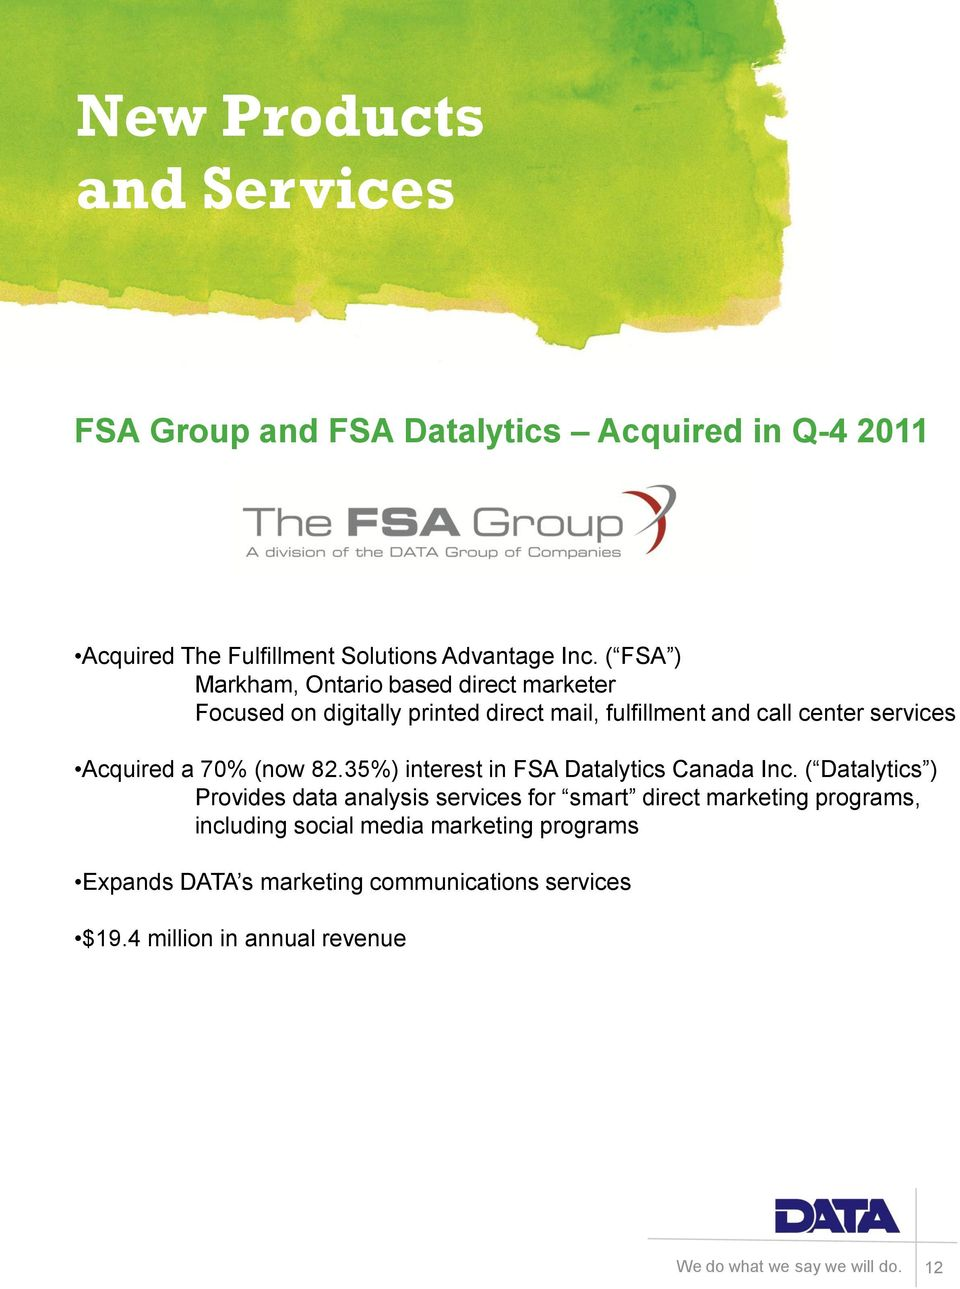 Acquired a 70% (now 82.35%) interest in FSA Datalytics Canada Inc.